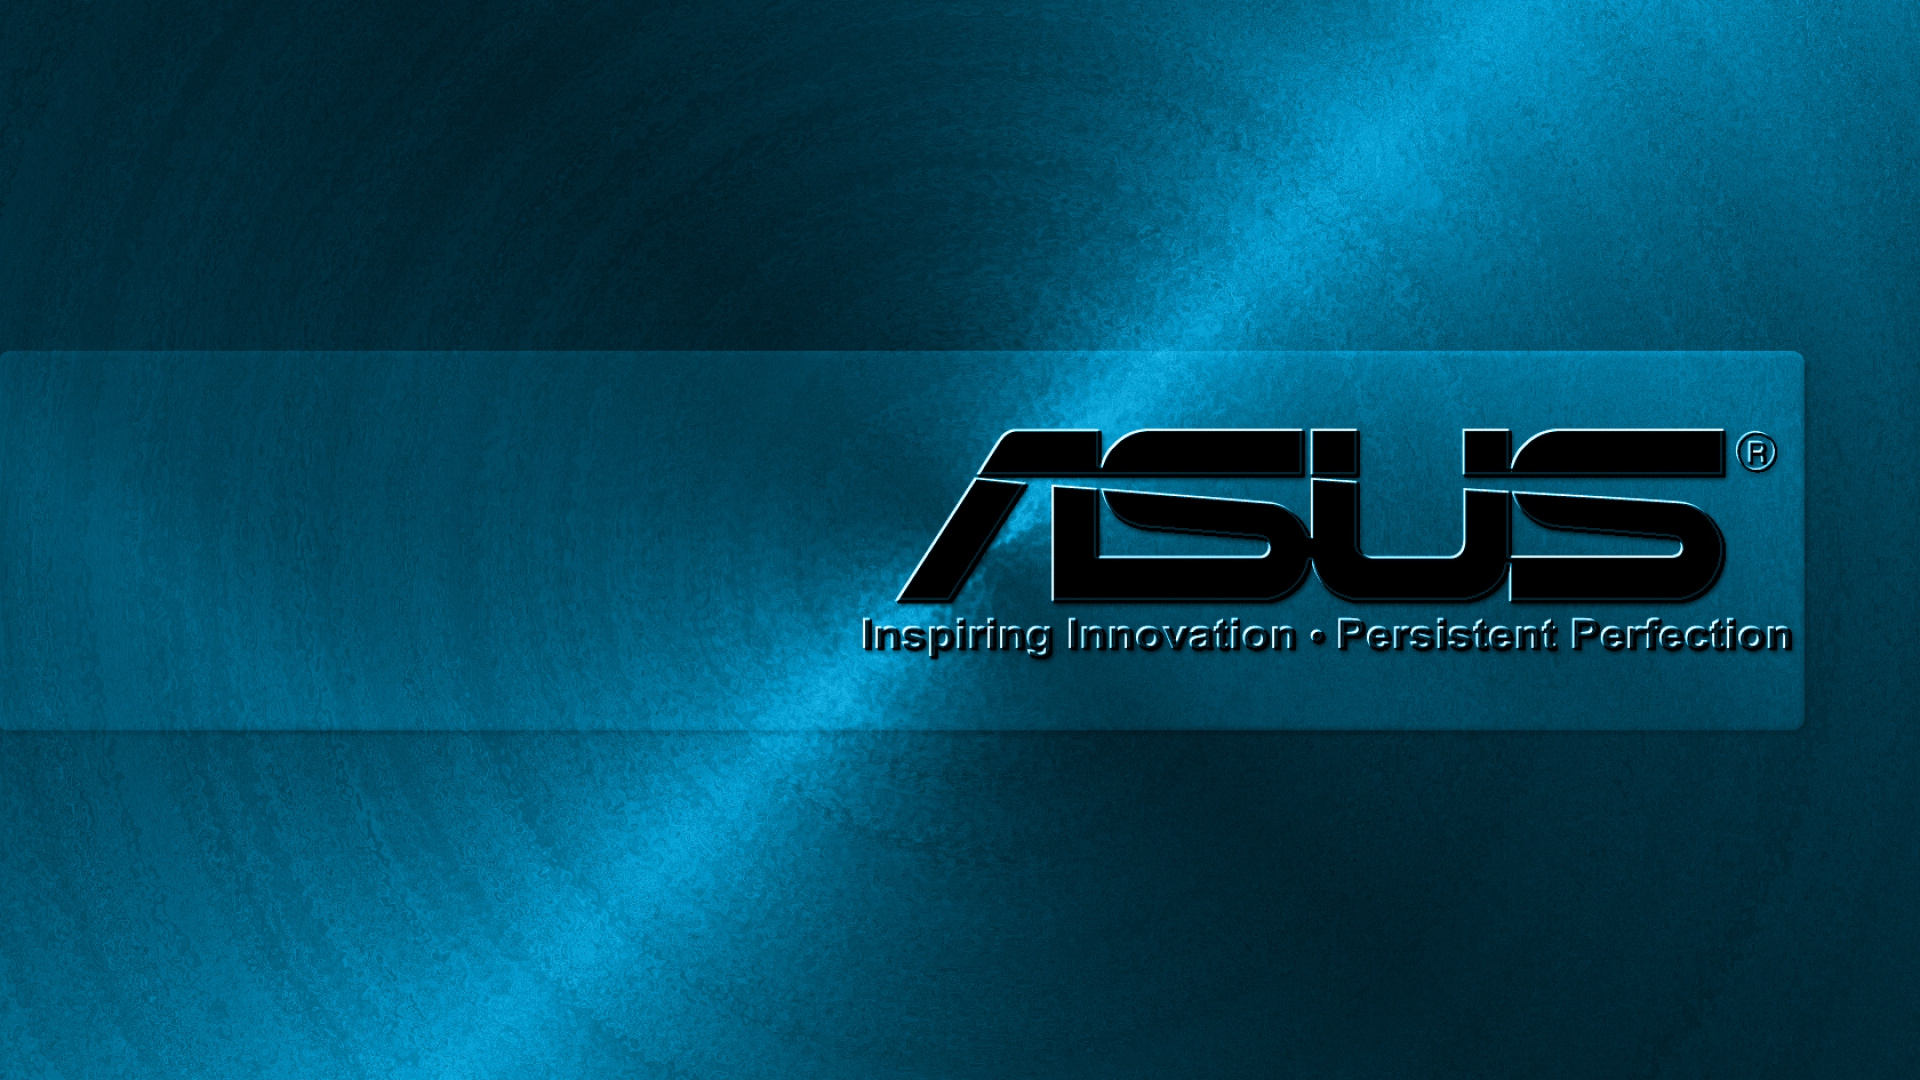 Asus hd wallpaper set 10 windows wallpapers Rumah IT 1920x1080